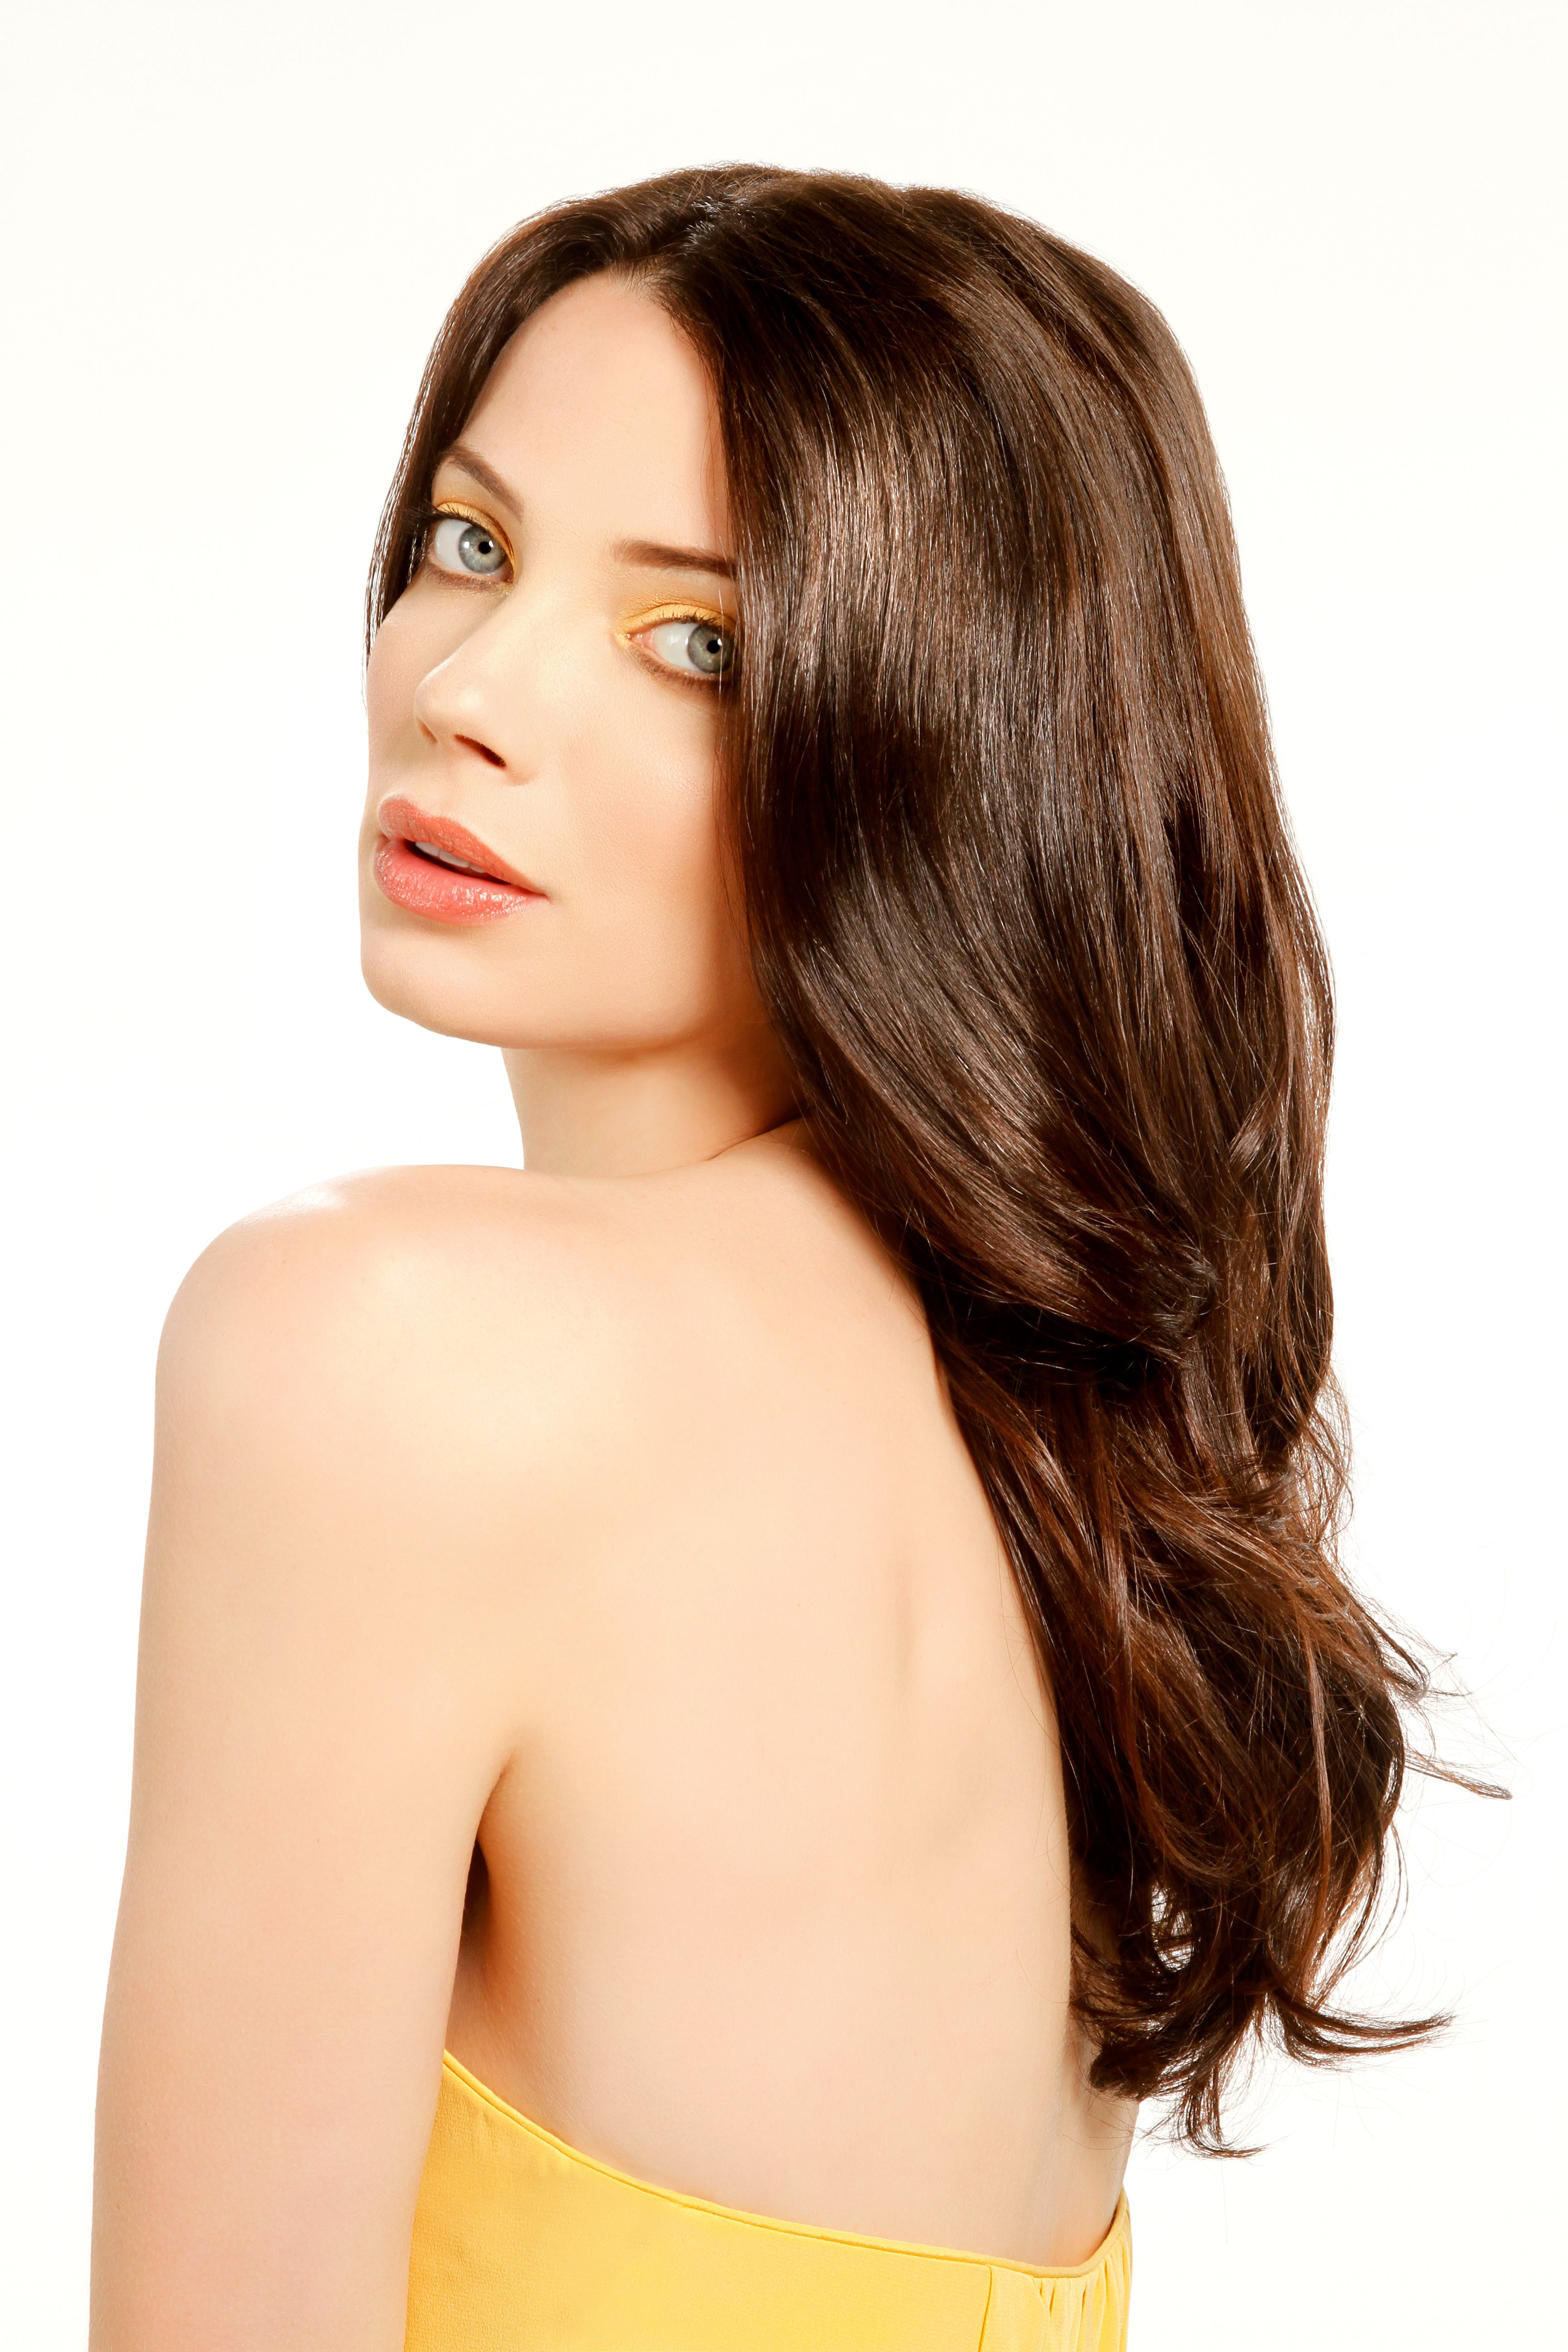 Get The Most From Your All Nutrient Haircolor Makeovers Hair Color Hair Styles Long Hair Styles